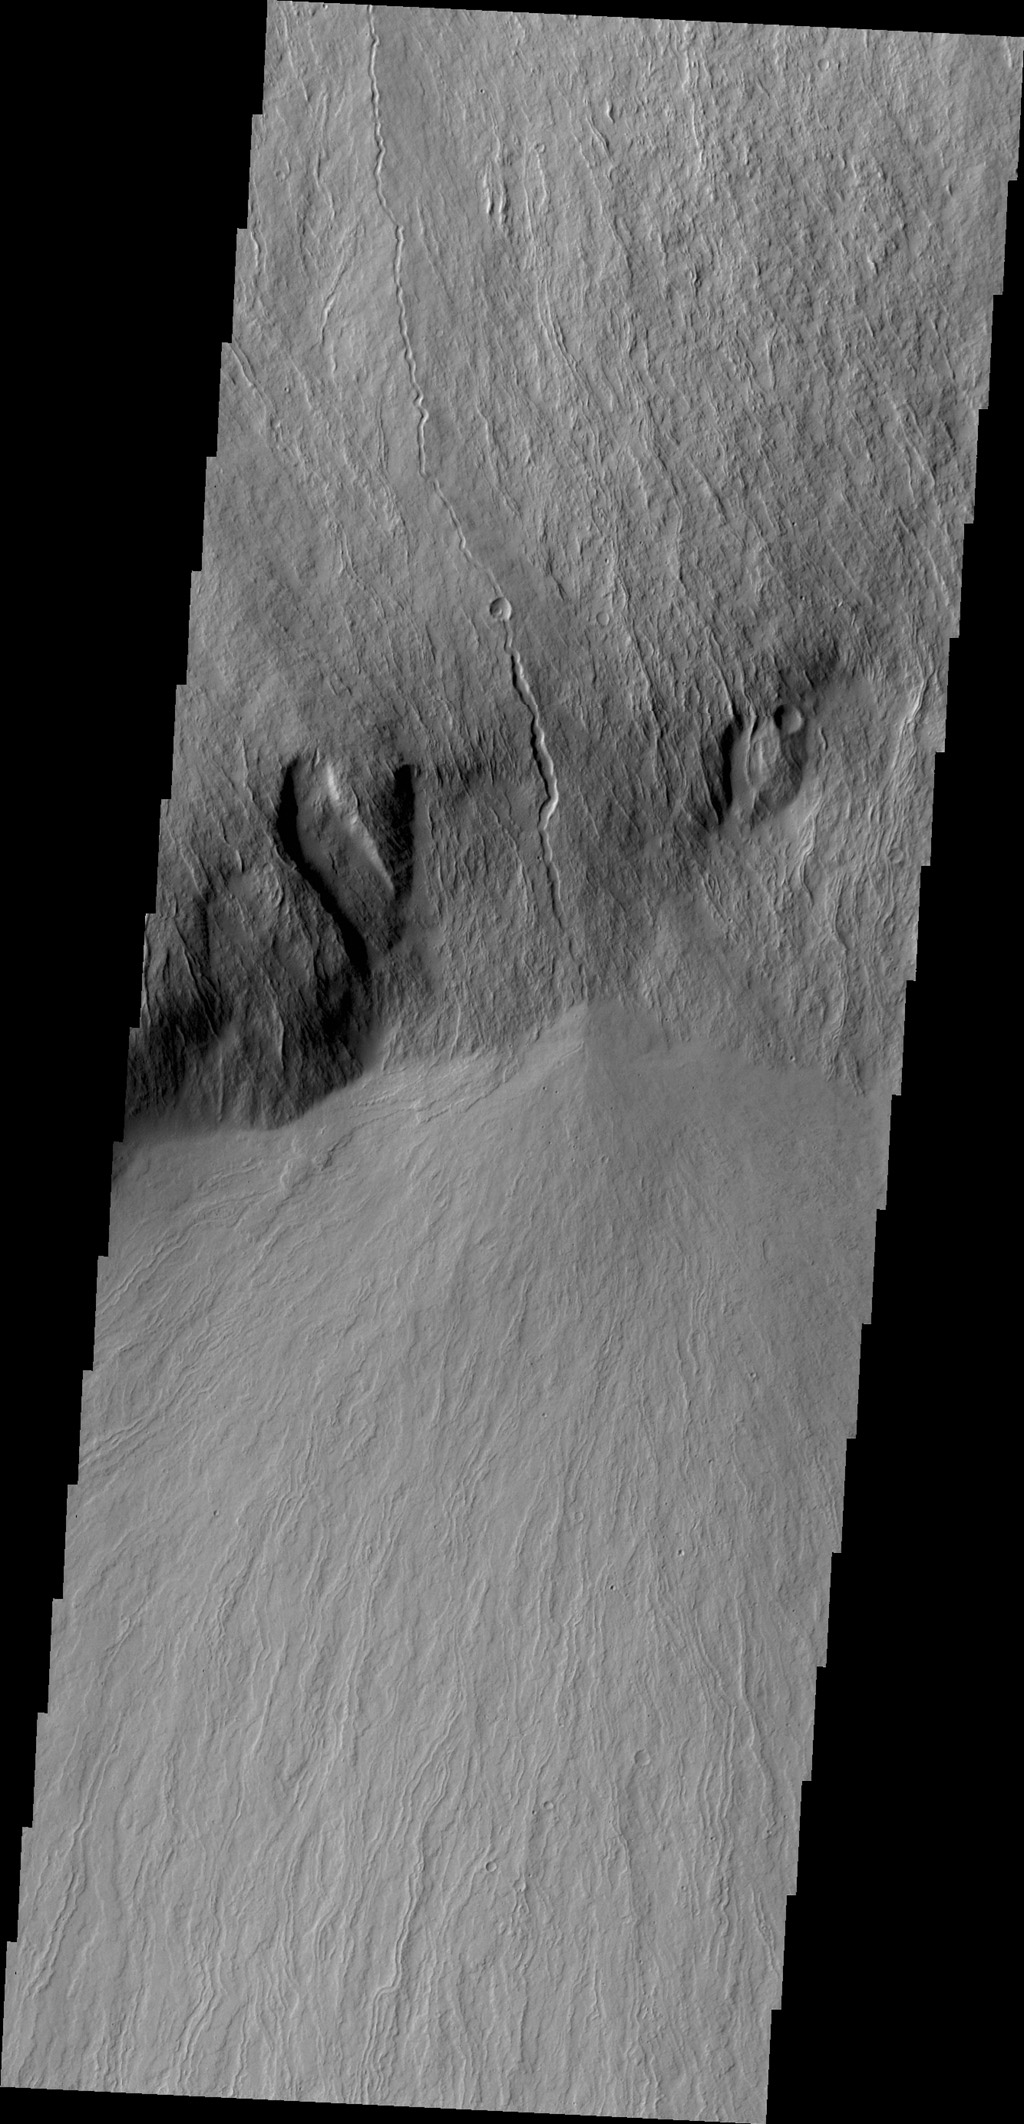 This image from NASA's 2001 Mars Odyssey spacecraft shows lava flows that cover the steep embankment called Olympus Rupes on the margin of Olympus Mons.